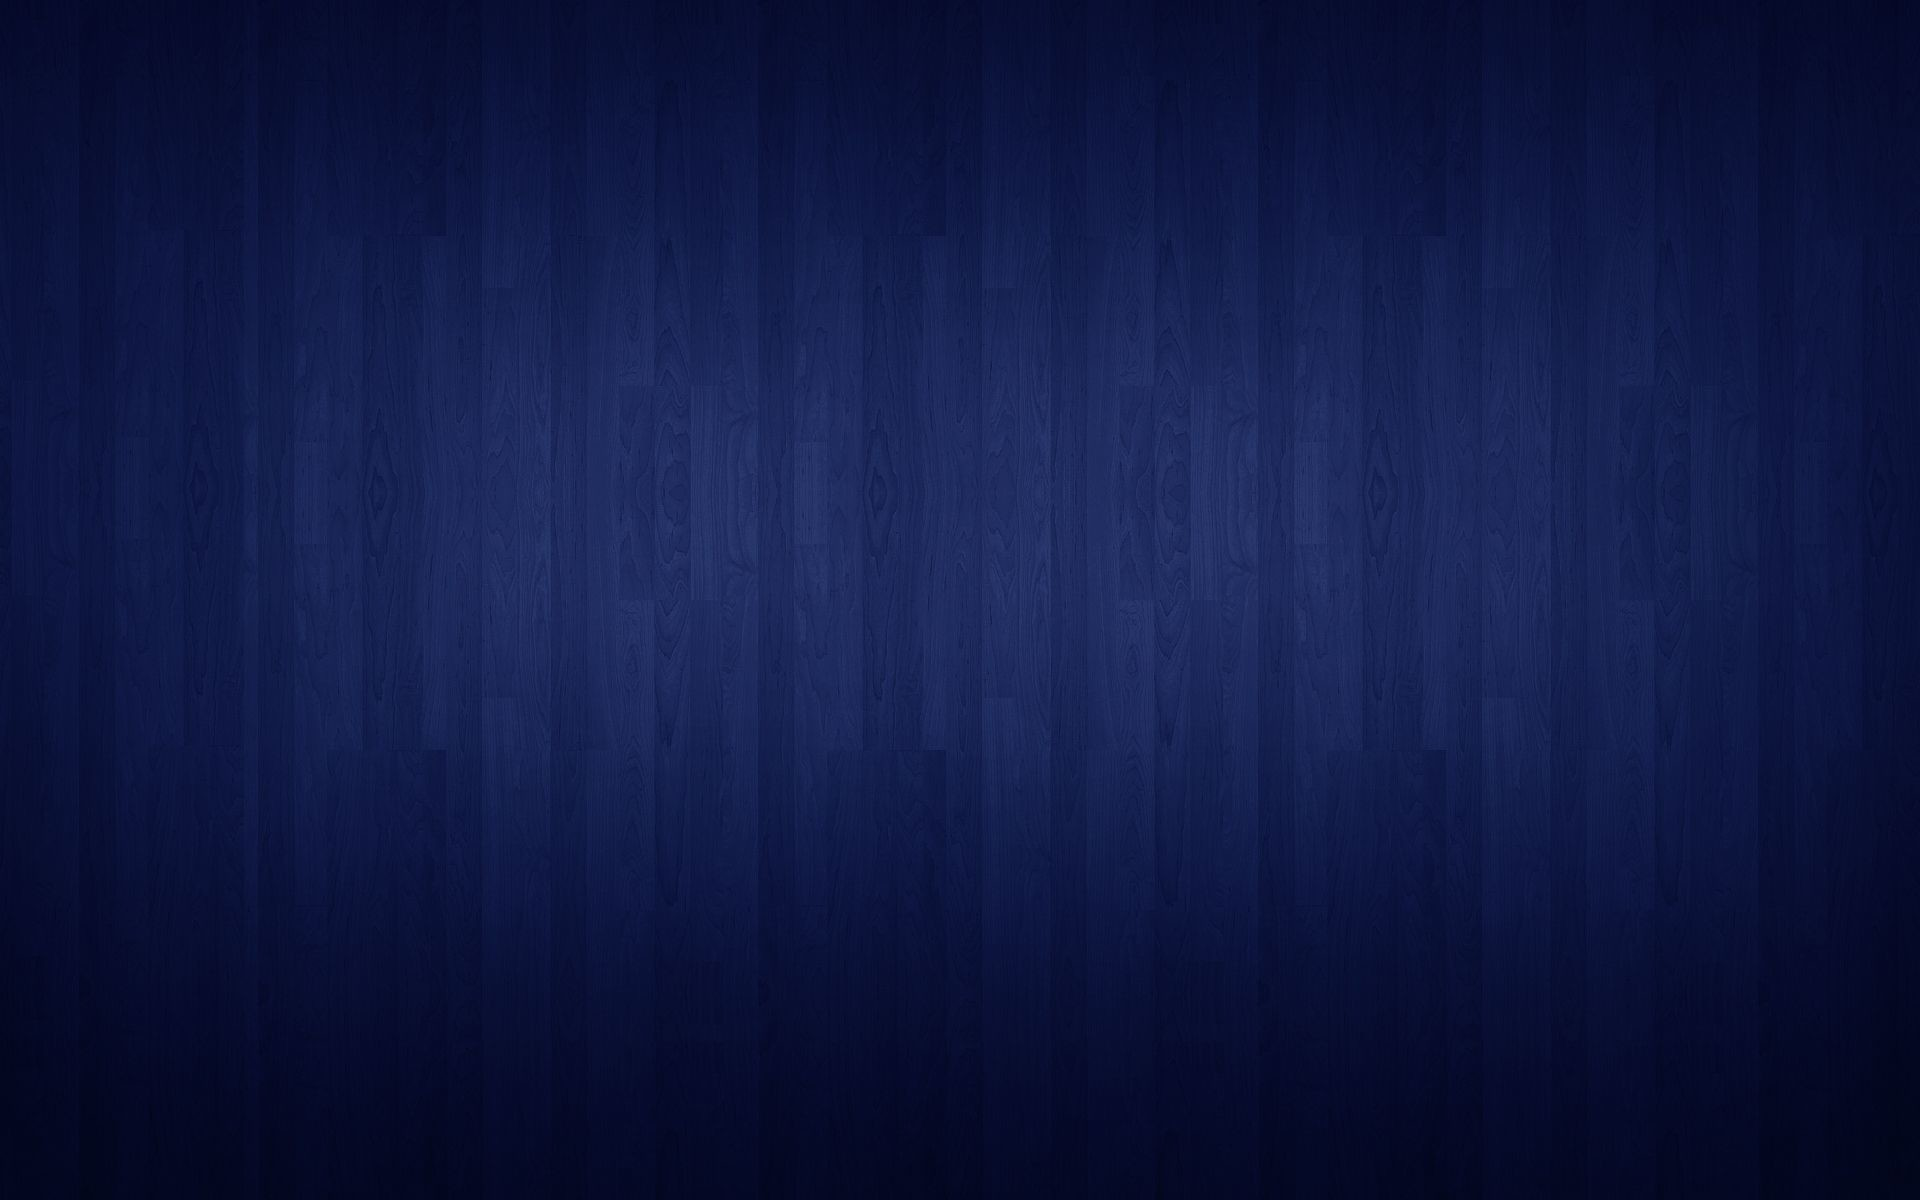 1920x1200 Wallpapers For > Navy Blue Background · Wallpapers For > Navy Blue  Background free powerpoint background